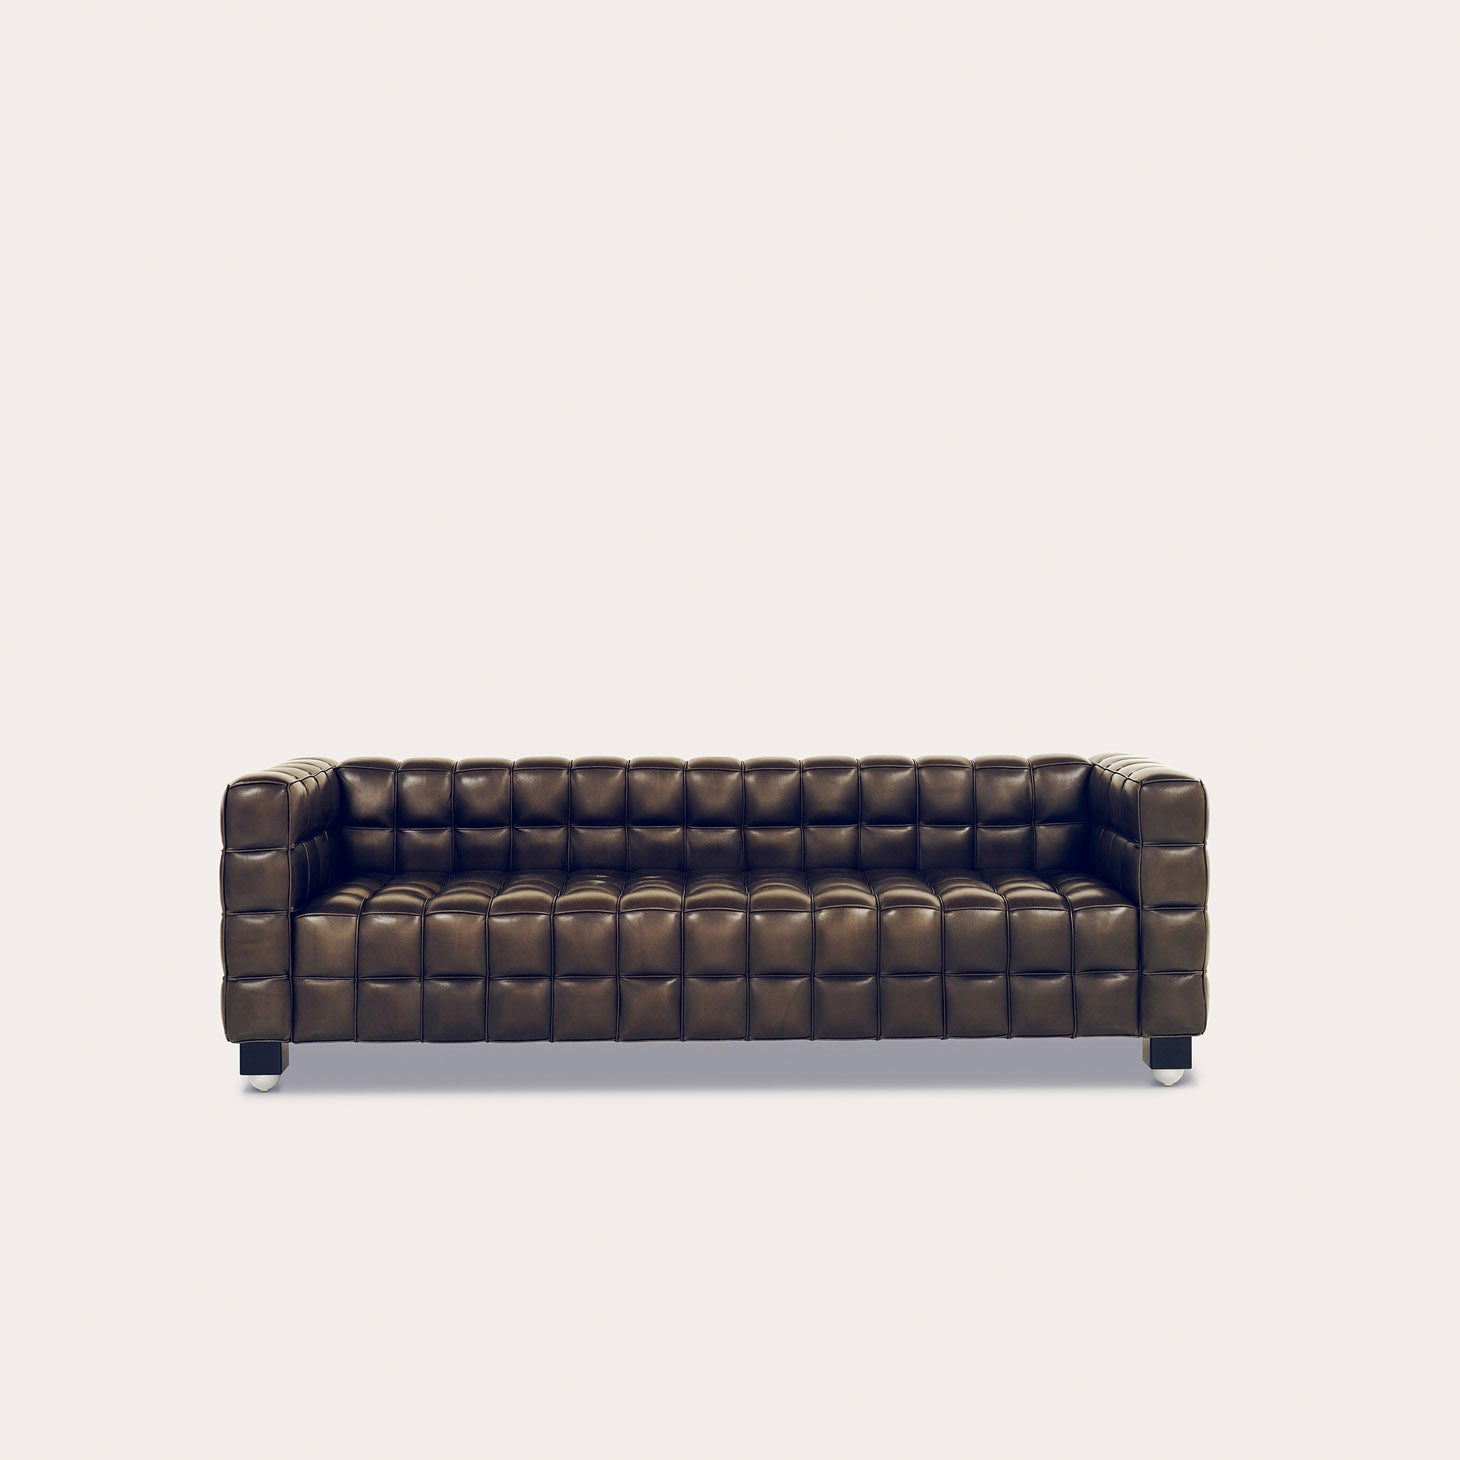 Kubus Seating Josef Hoffmann Designer Furniture Sku: 758-240-10098